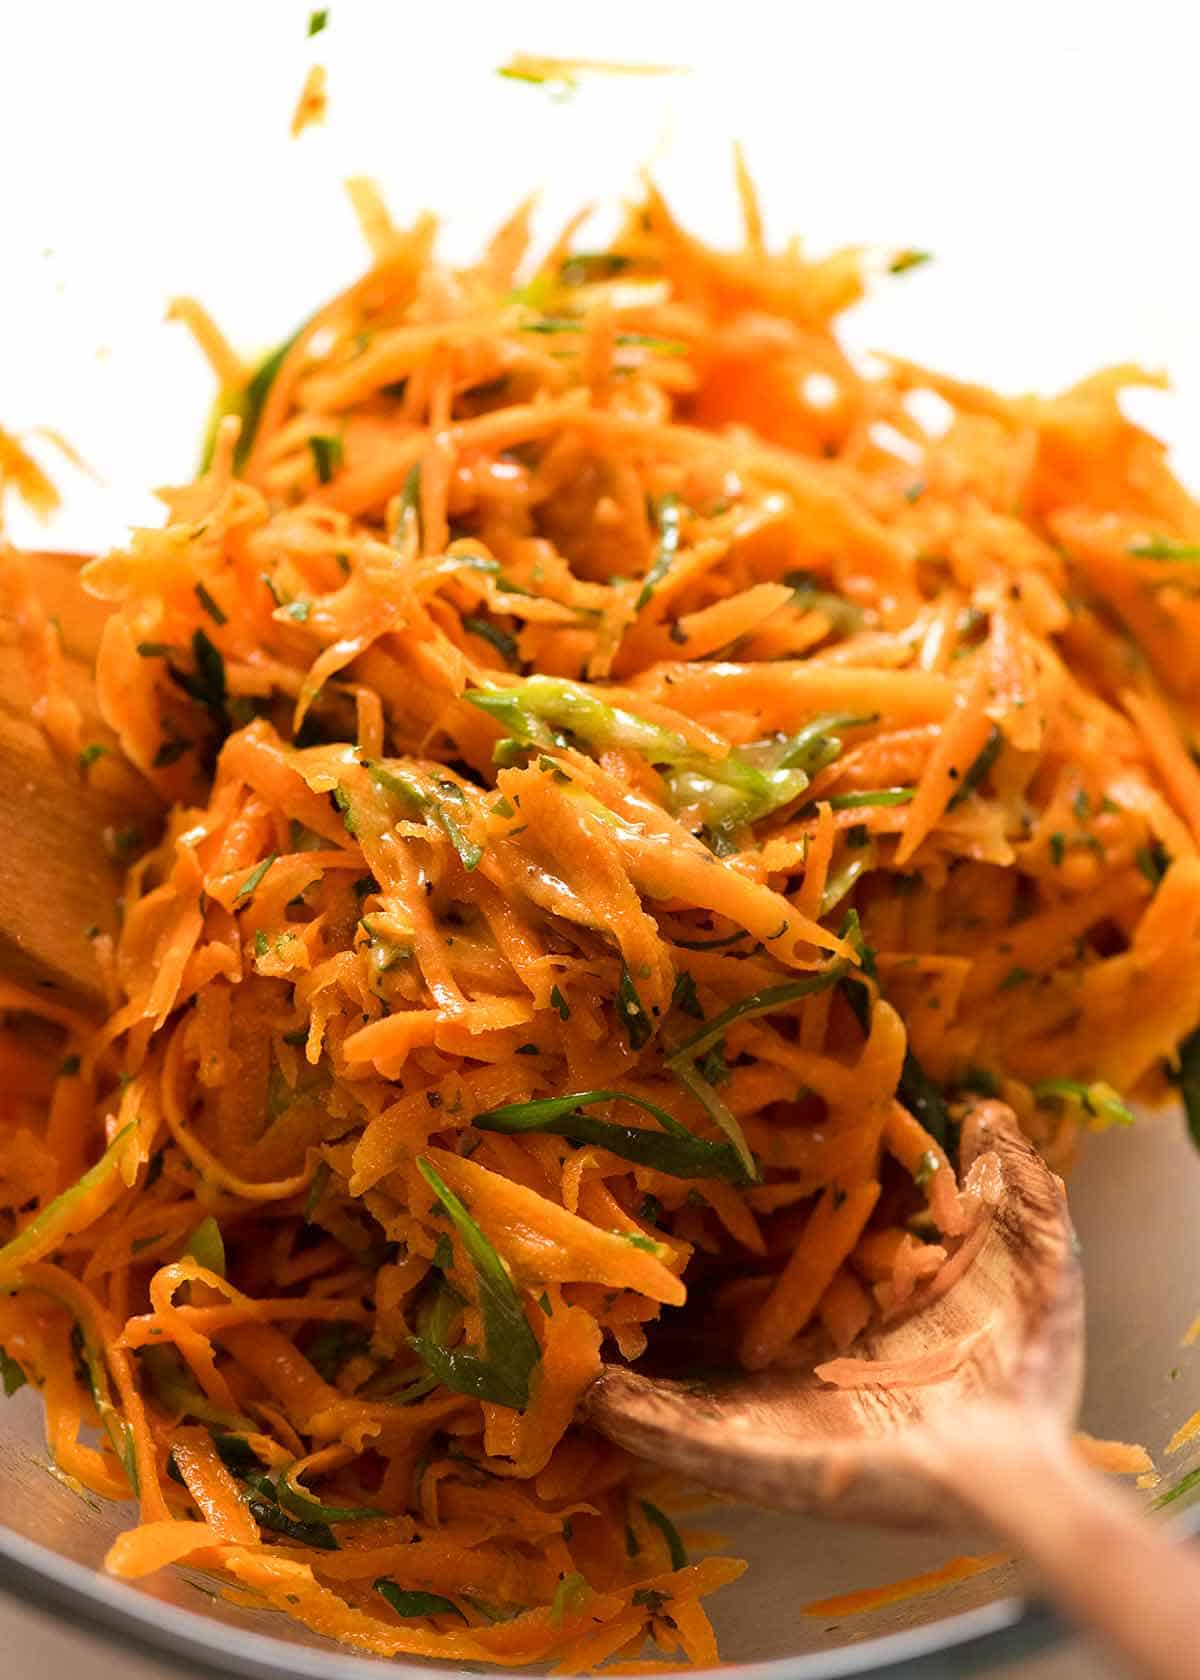 Close up of Carrot Salad with Honey Dijon Mustard Dressing